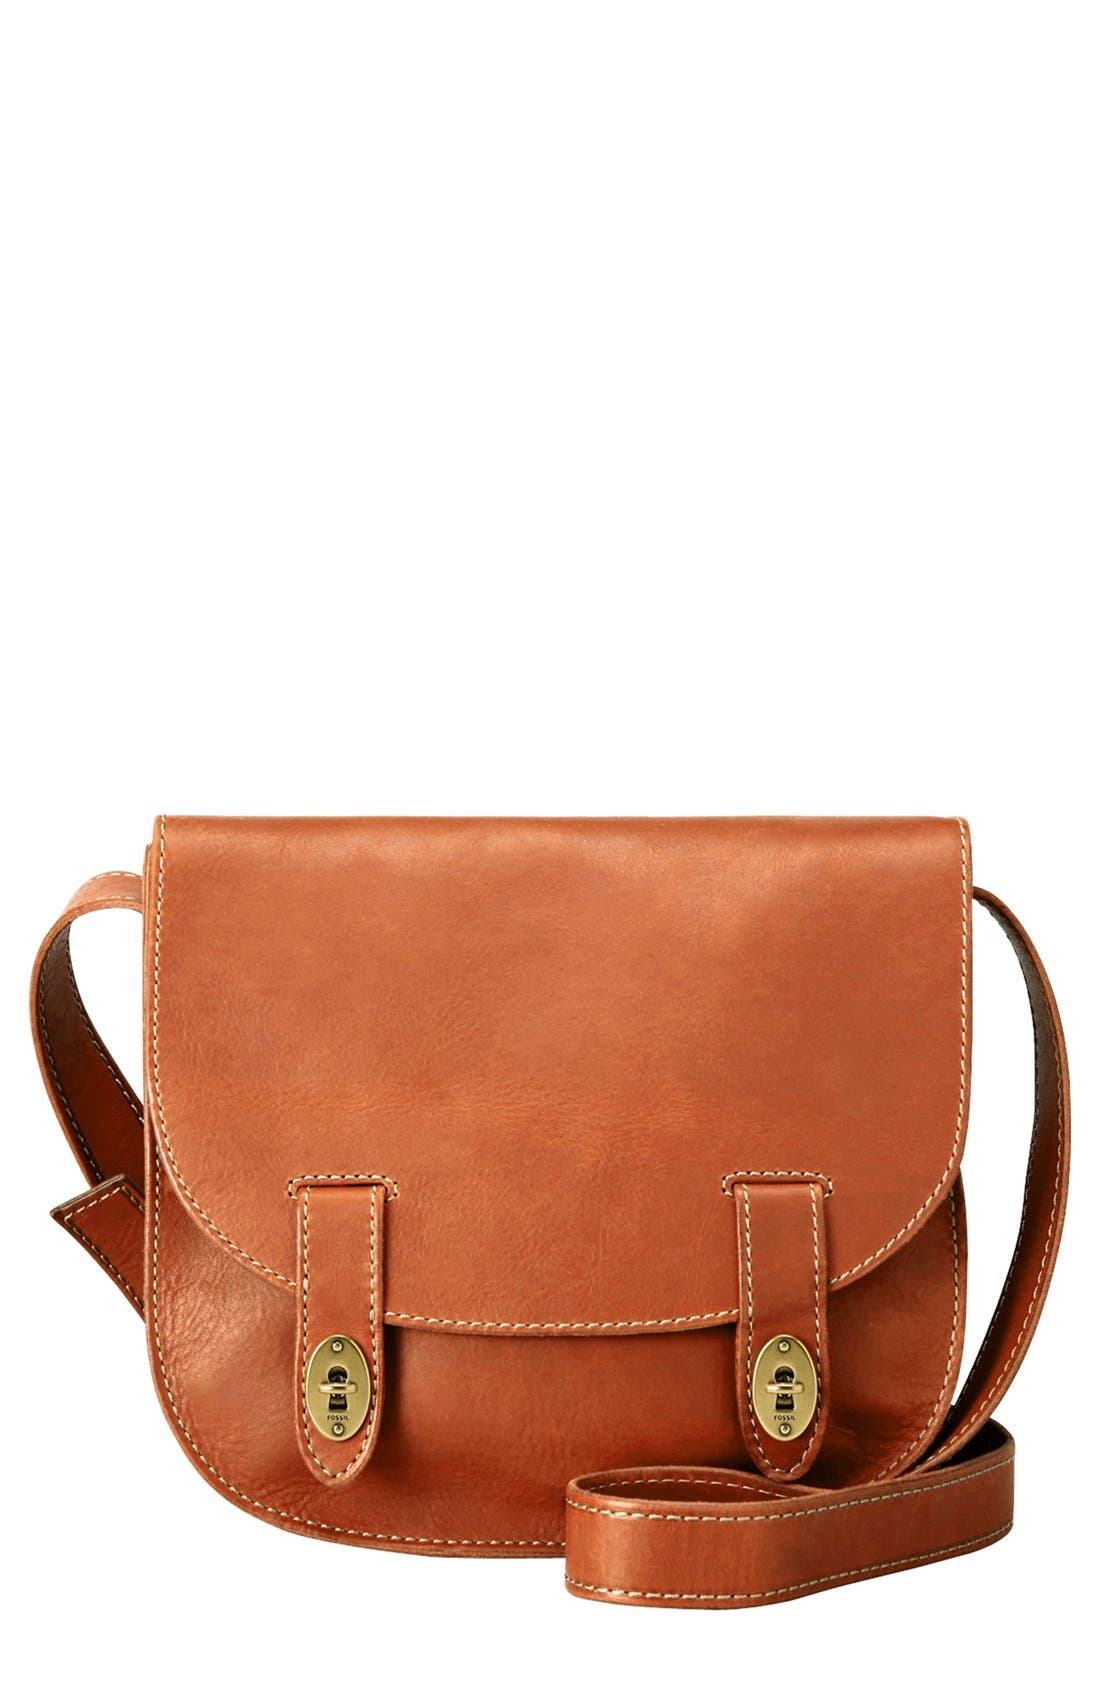 Alternate Image 1 Selected - Fossil 'Austin - Large' Satchel